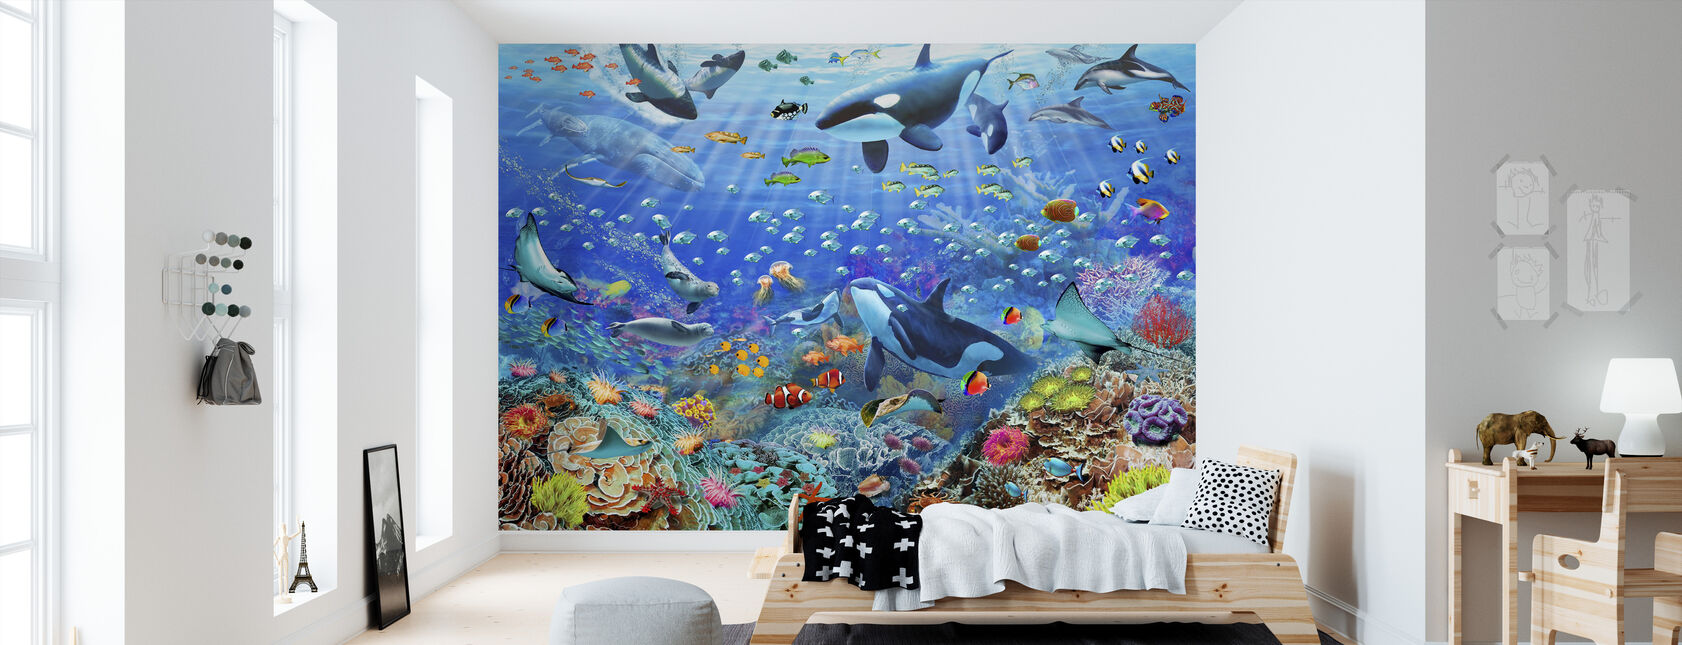 Underwater Scene - Wallpaper - Kids Room